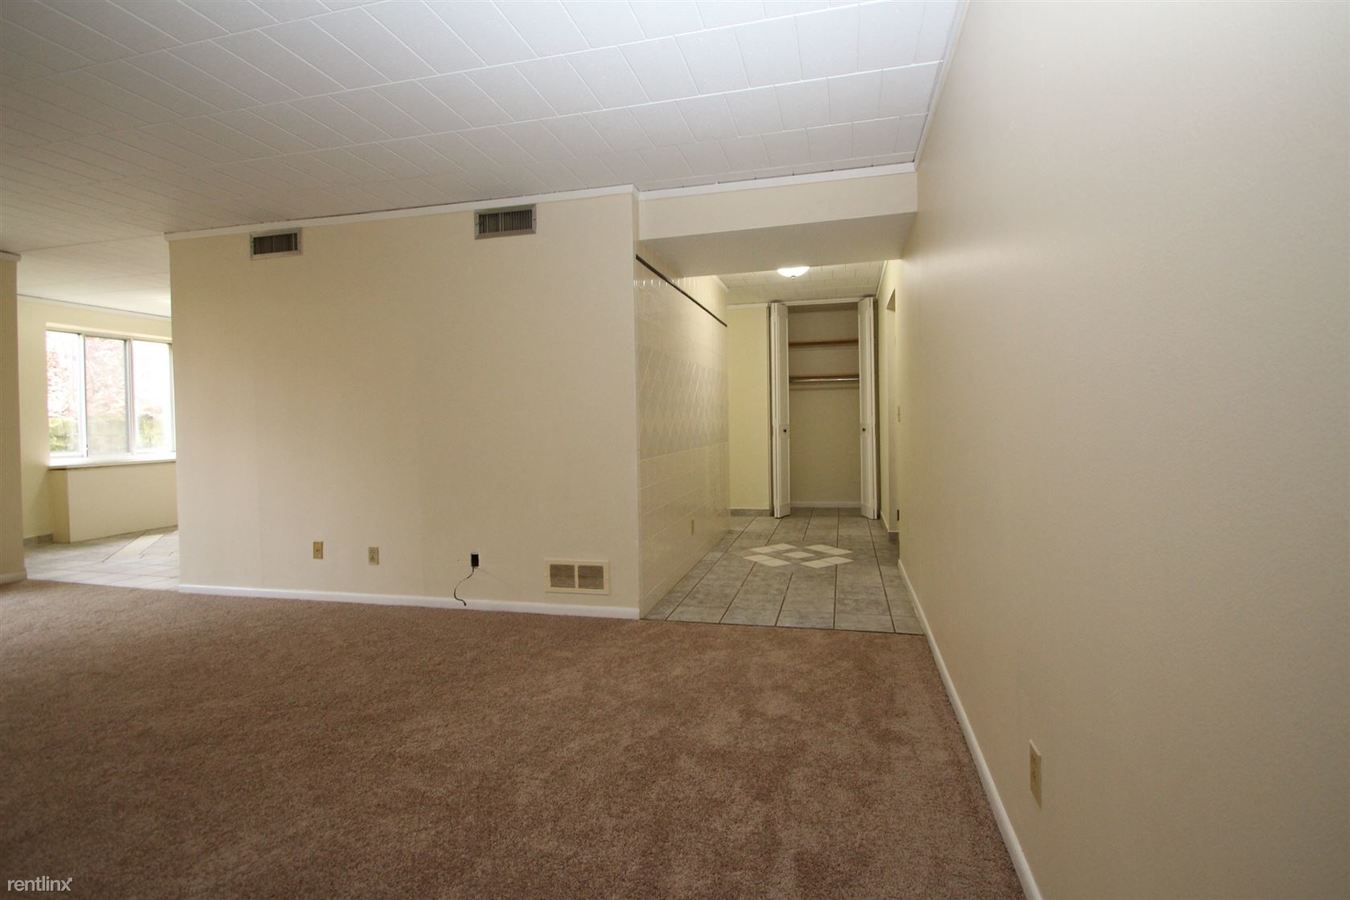 1 Bedroom 1 Bathroom Apartment for rent at Queensbury in Avalon, PA